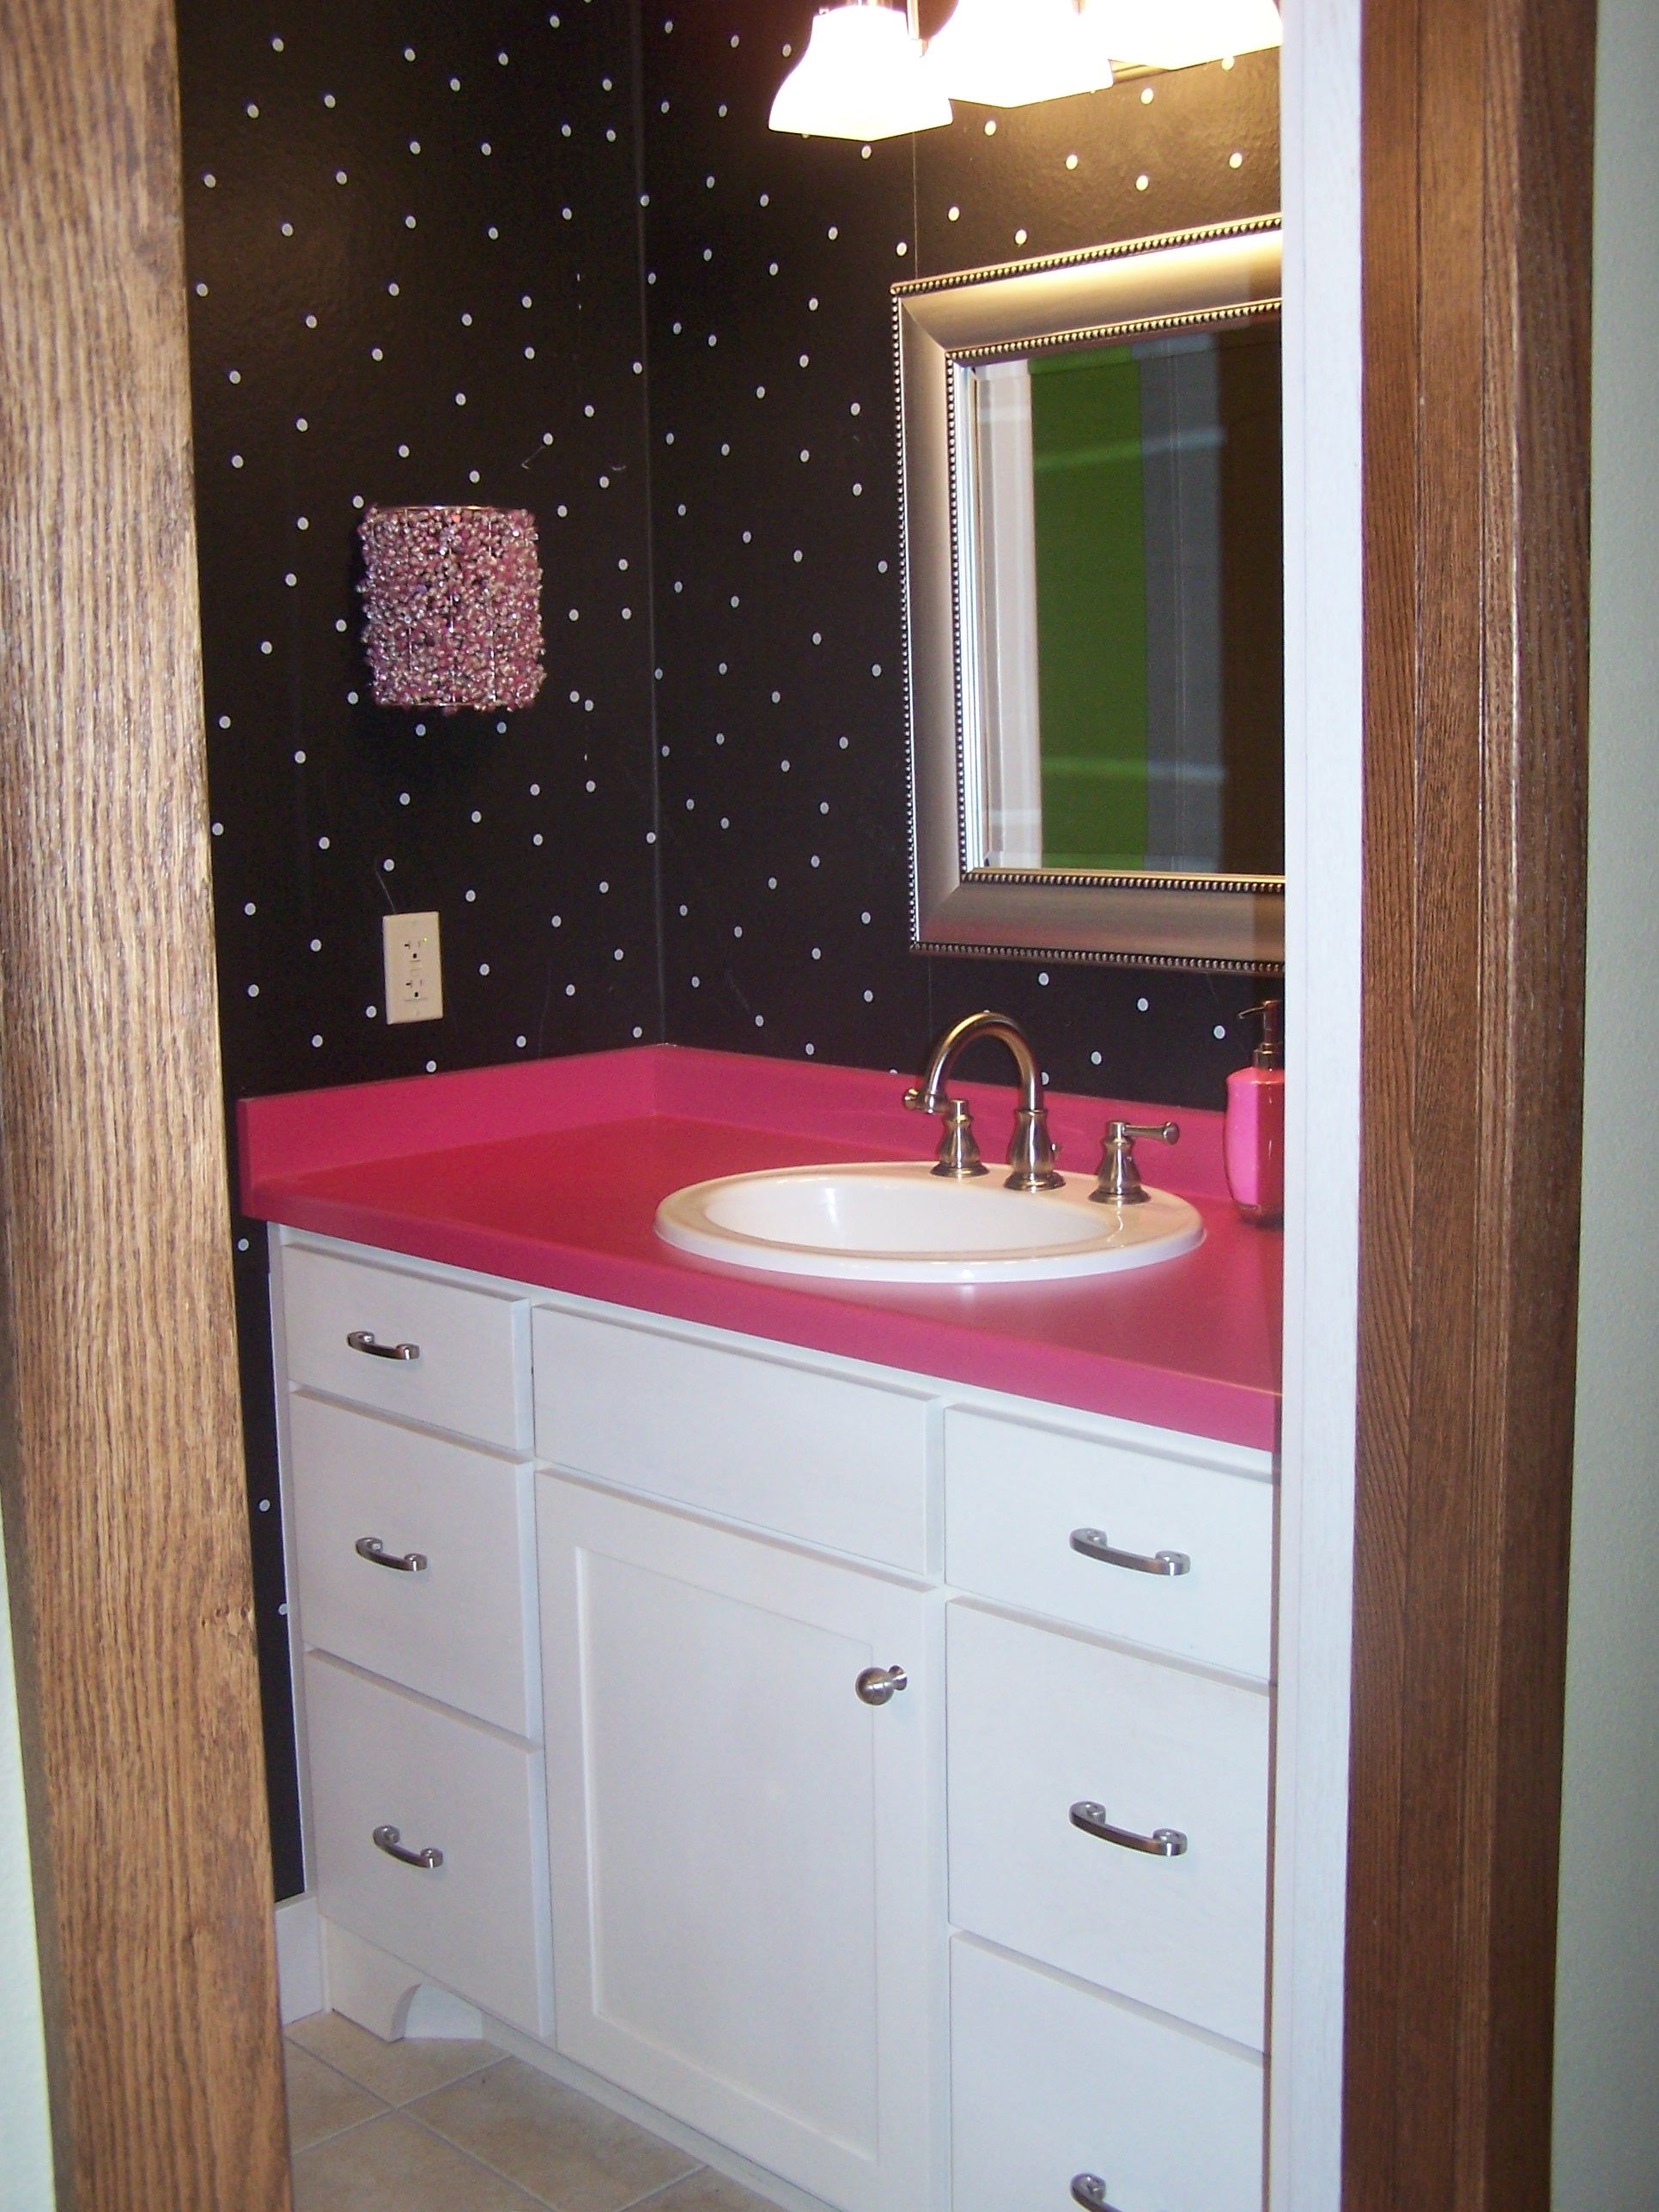 Girls Bathroom With Hot Pink Laminate Countertops And White Cabinets By  Swita Cabinetry.